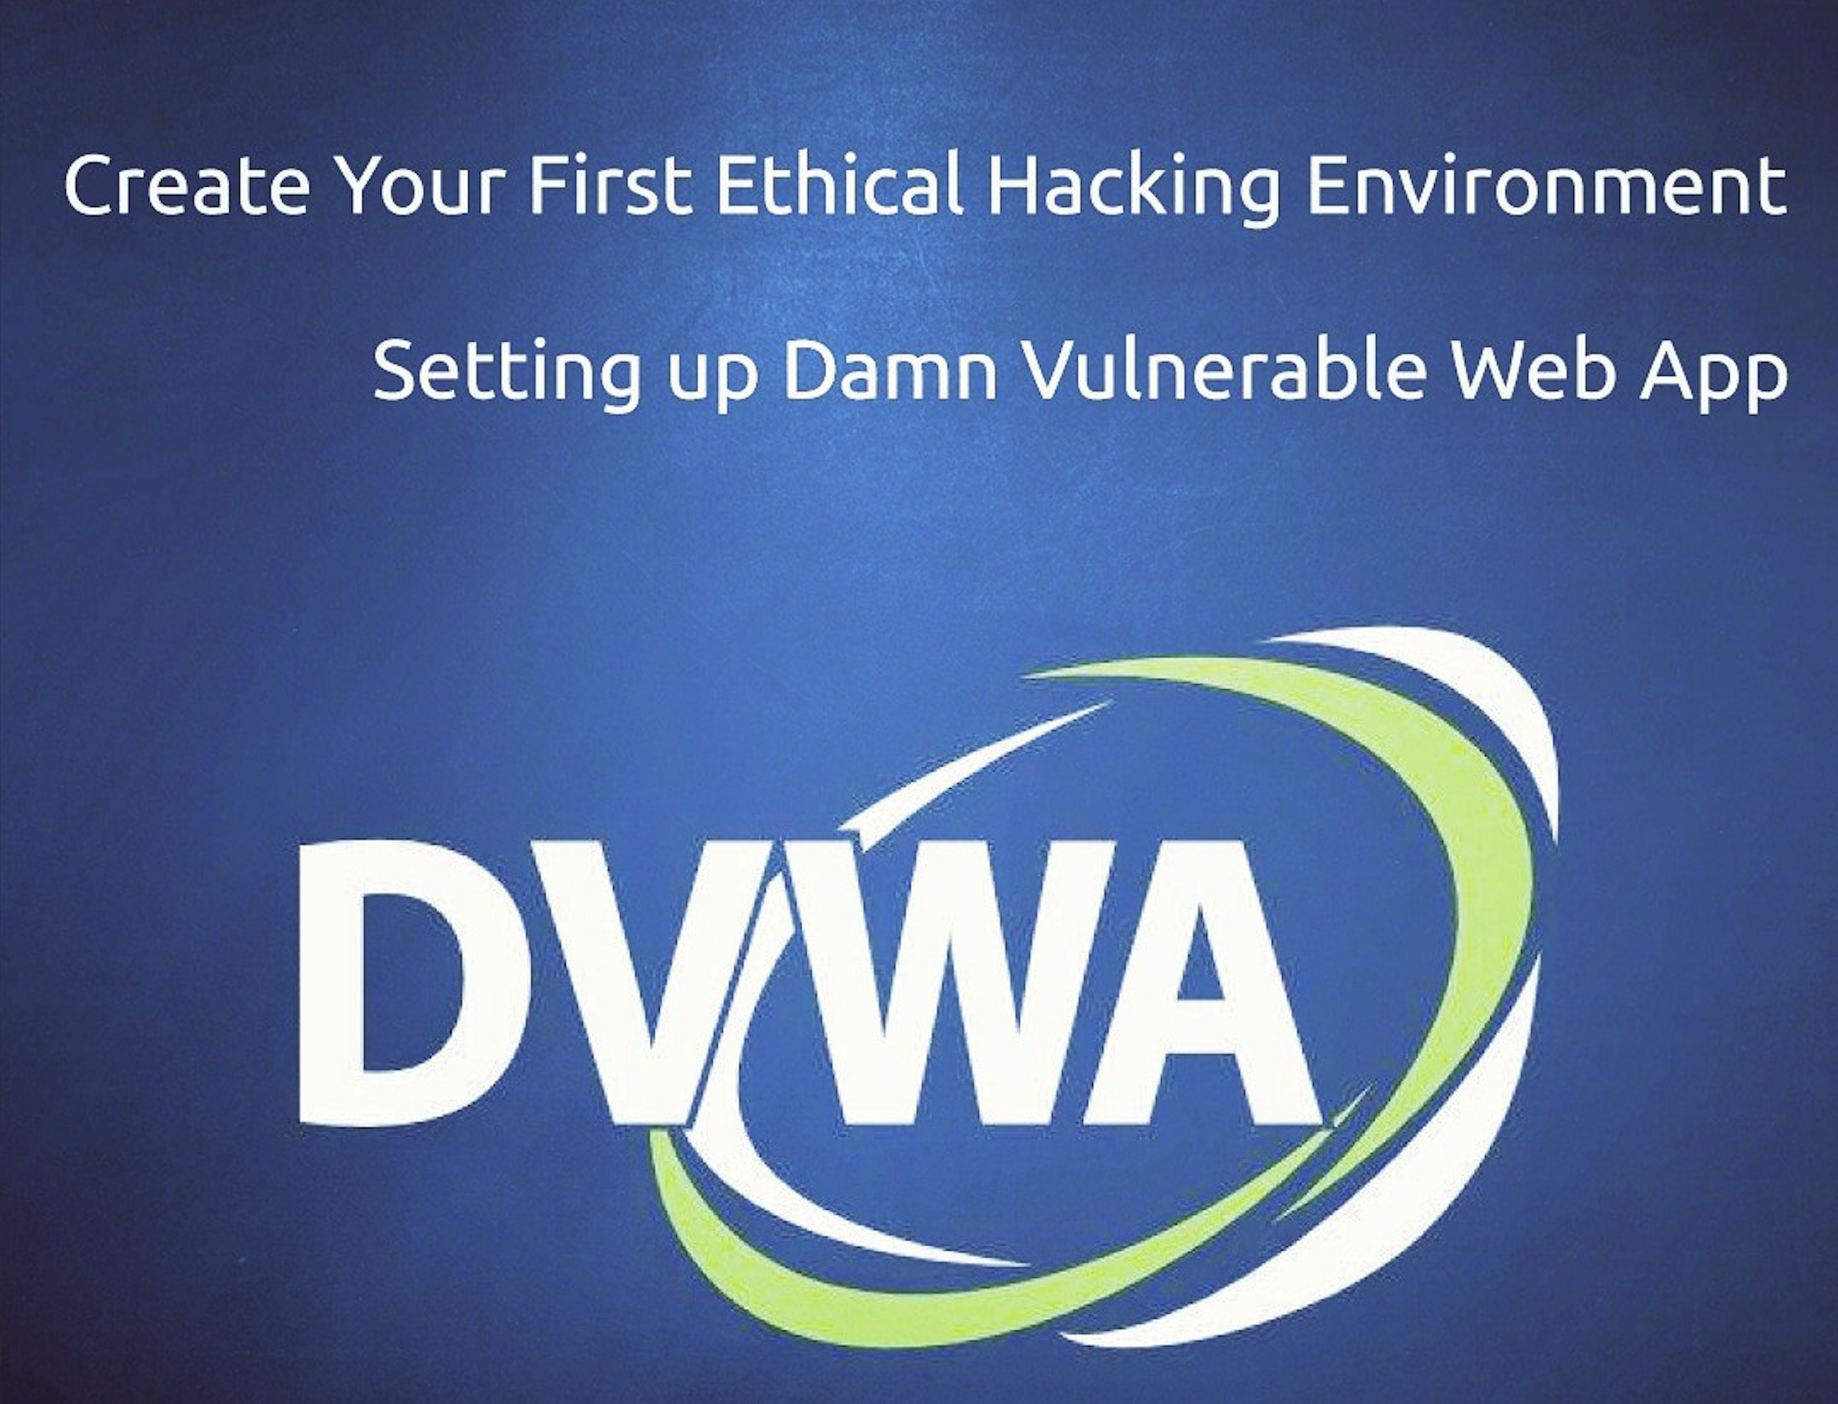 How to Install DVWA Into Your Linux Distribution - Data Driven